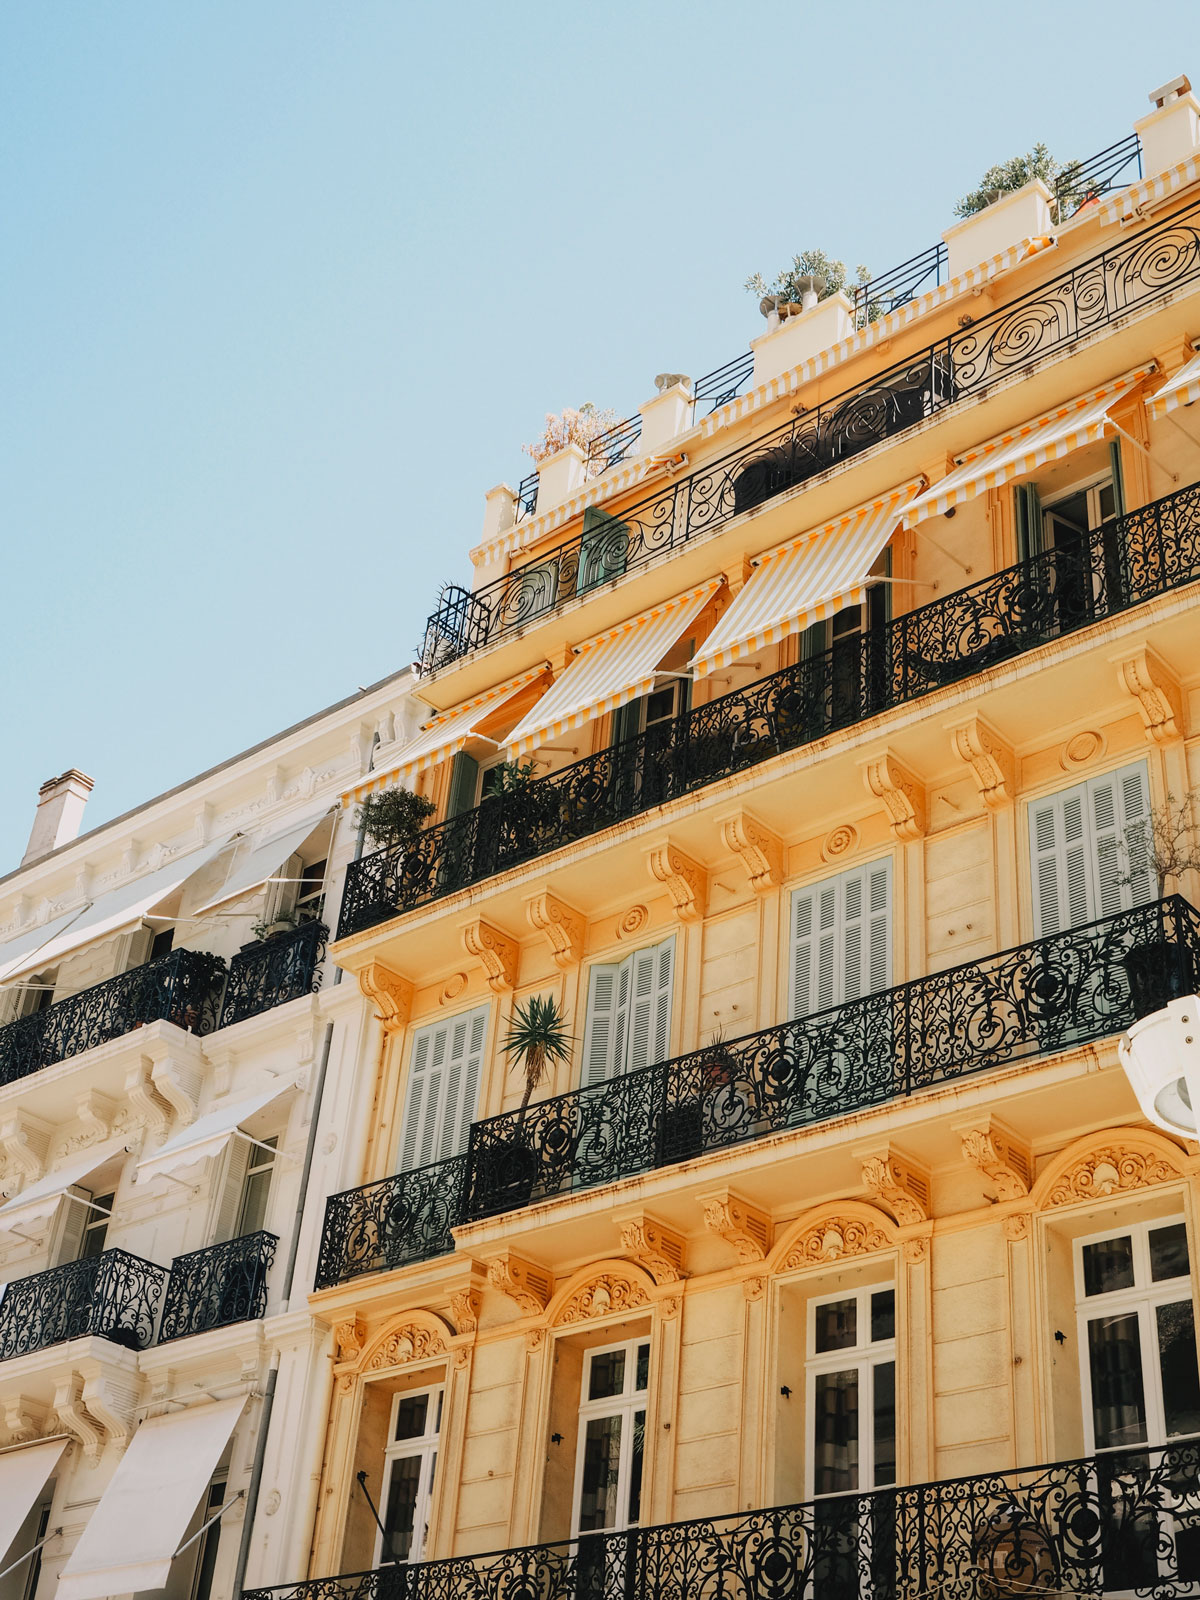 Details of A 48 Hour Trip to the Cannes Film Festival